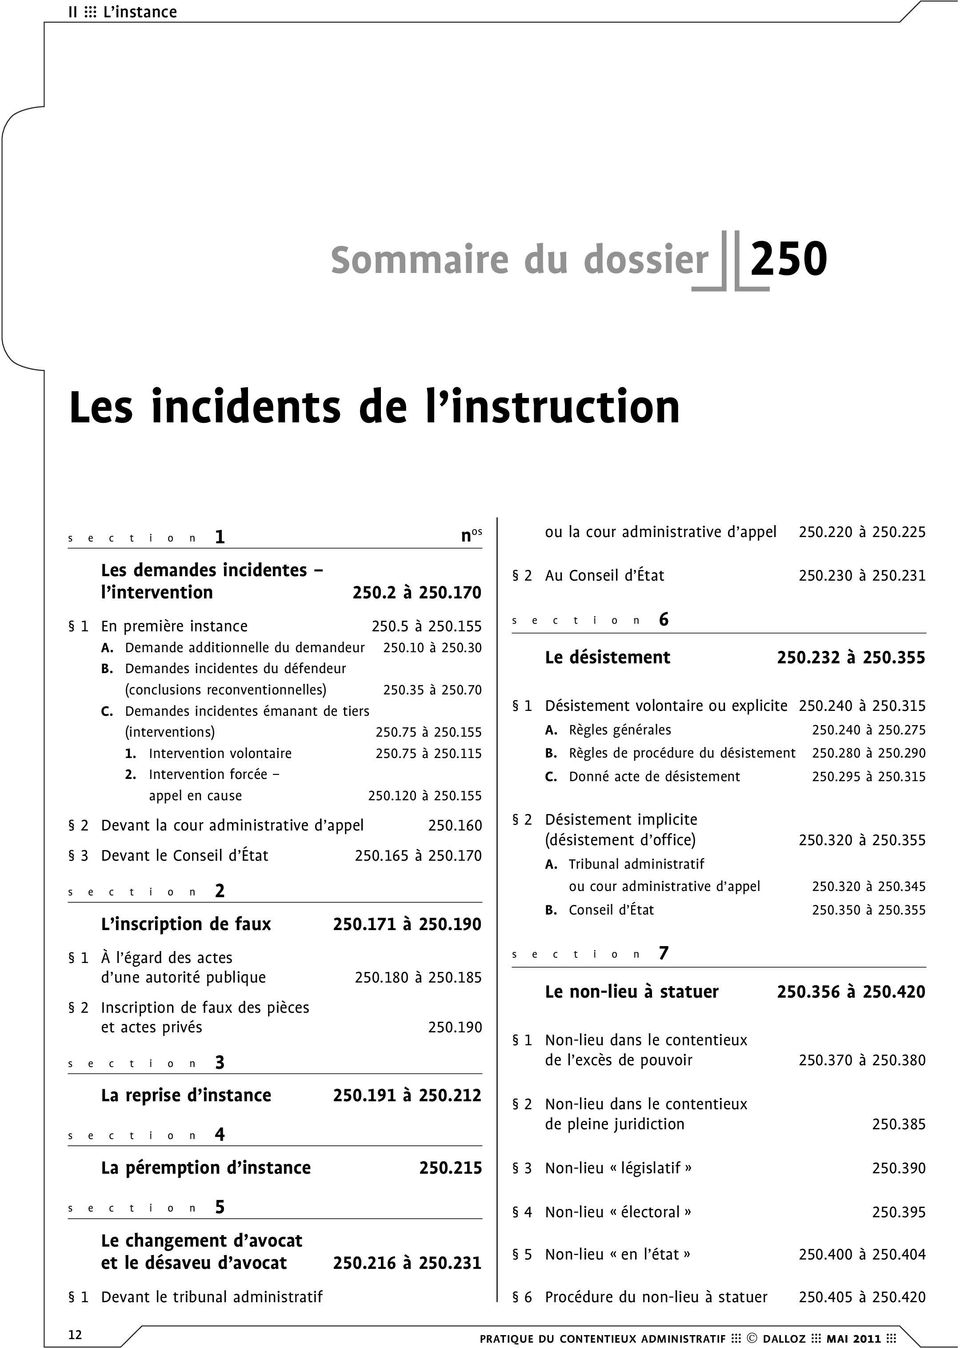 75 à 250.155 1. Intervention volontaire 250.75 à 250.115 2. Intervention forcée appel en cause 250.120 à 250.155 2 Devant la cour administrative d appel 250.160 3 Devant le Conseil d État 250.